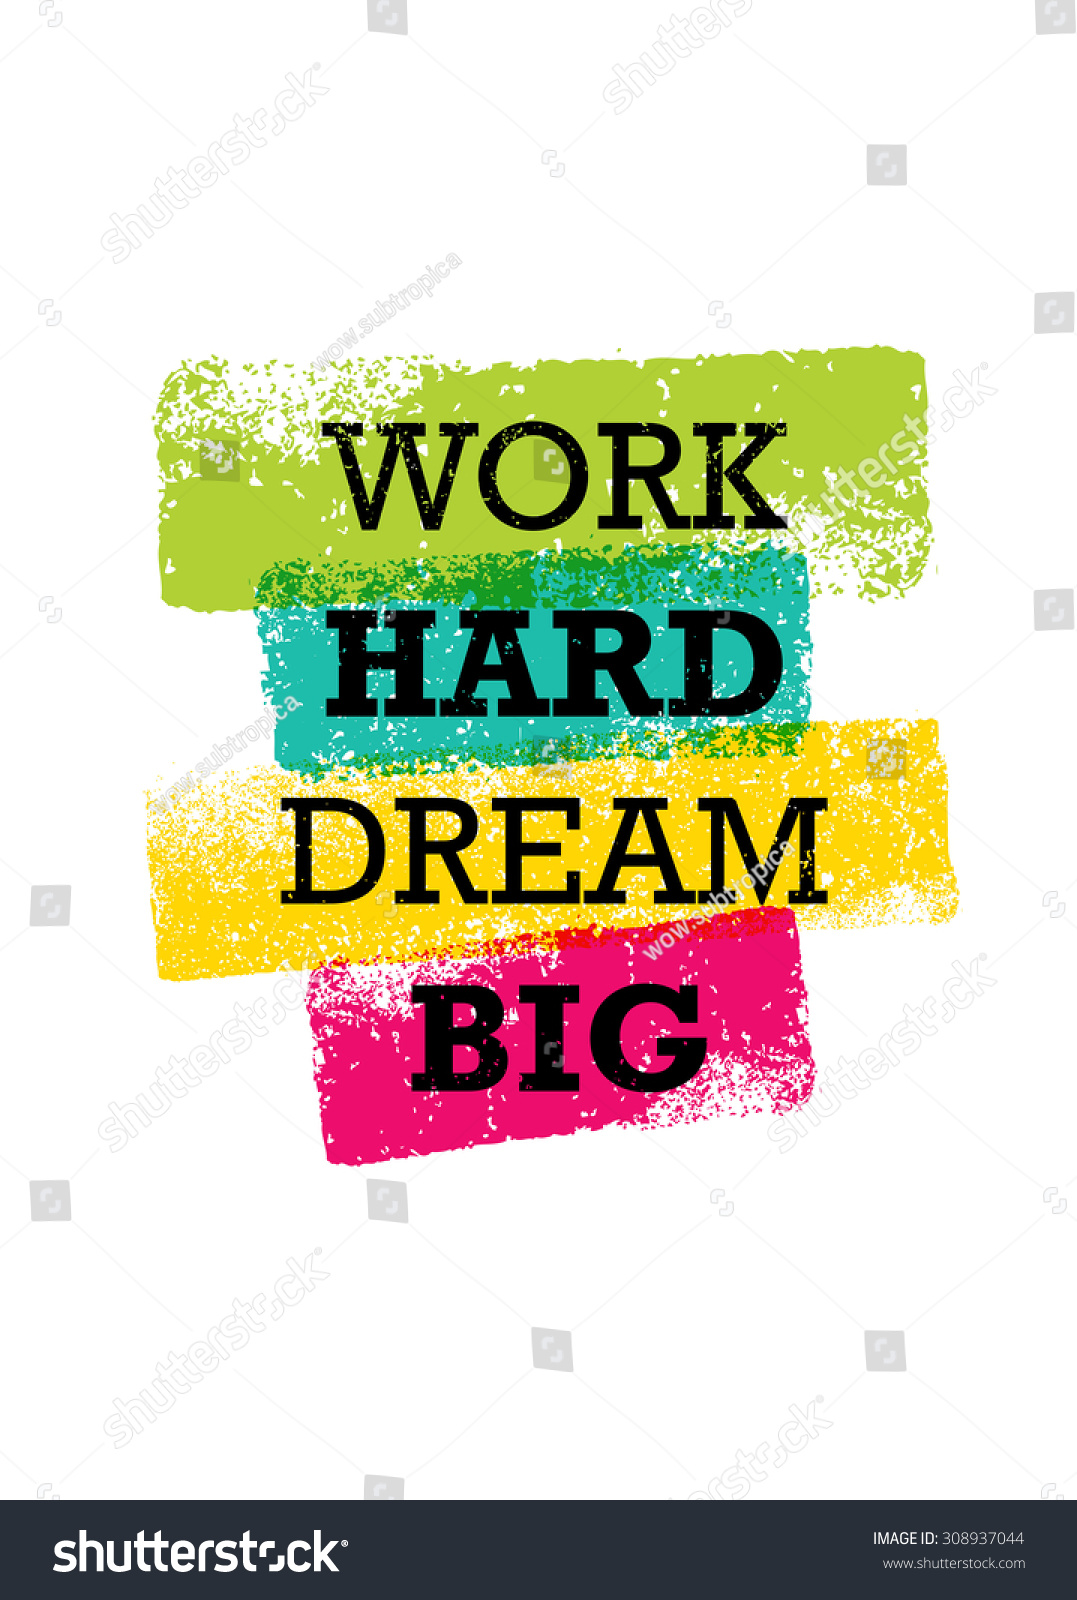 Work Hard Dream Big Creative Motivation Stock Vector ...